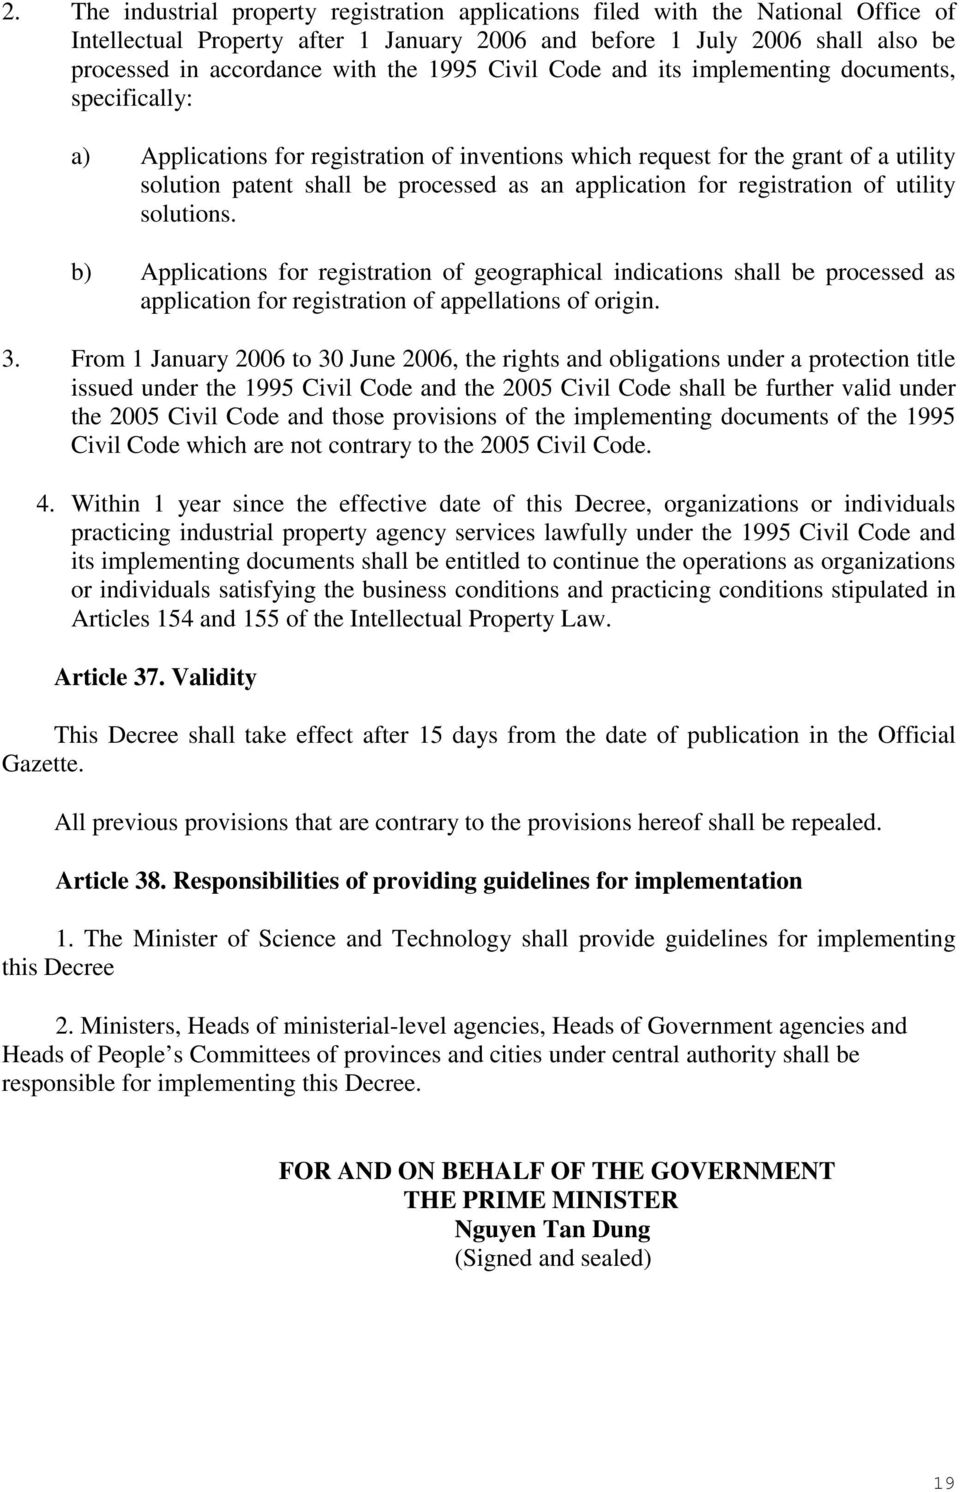 application for registration of utility solutions. b) Applications for registration of geographical indications shall be processed as application for registration of appellations of origin. 3.